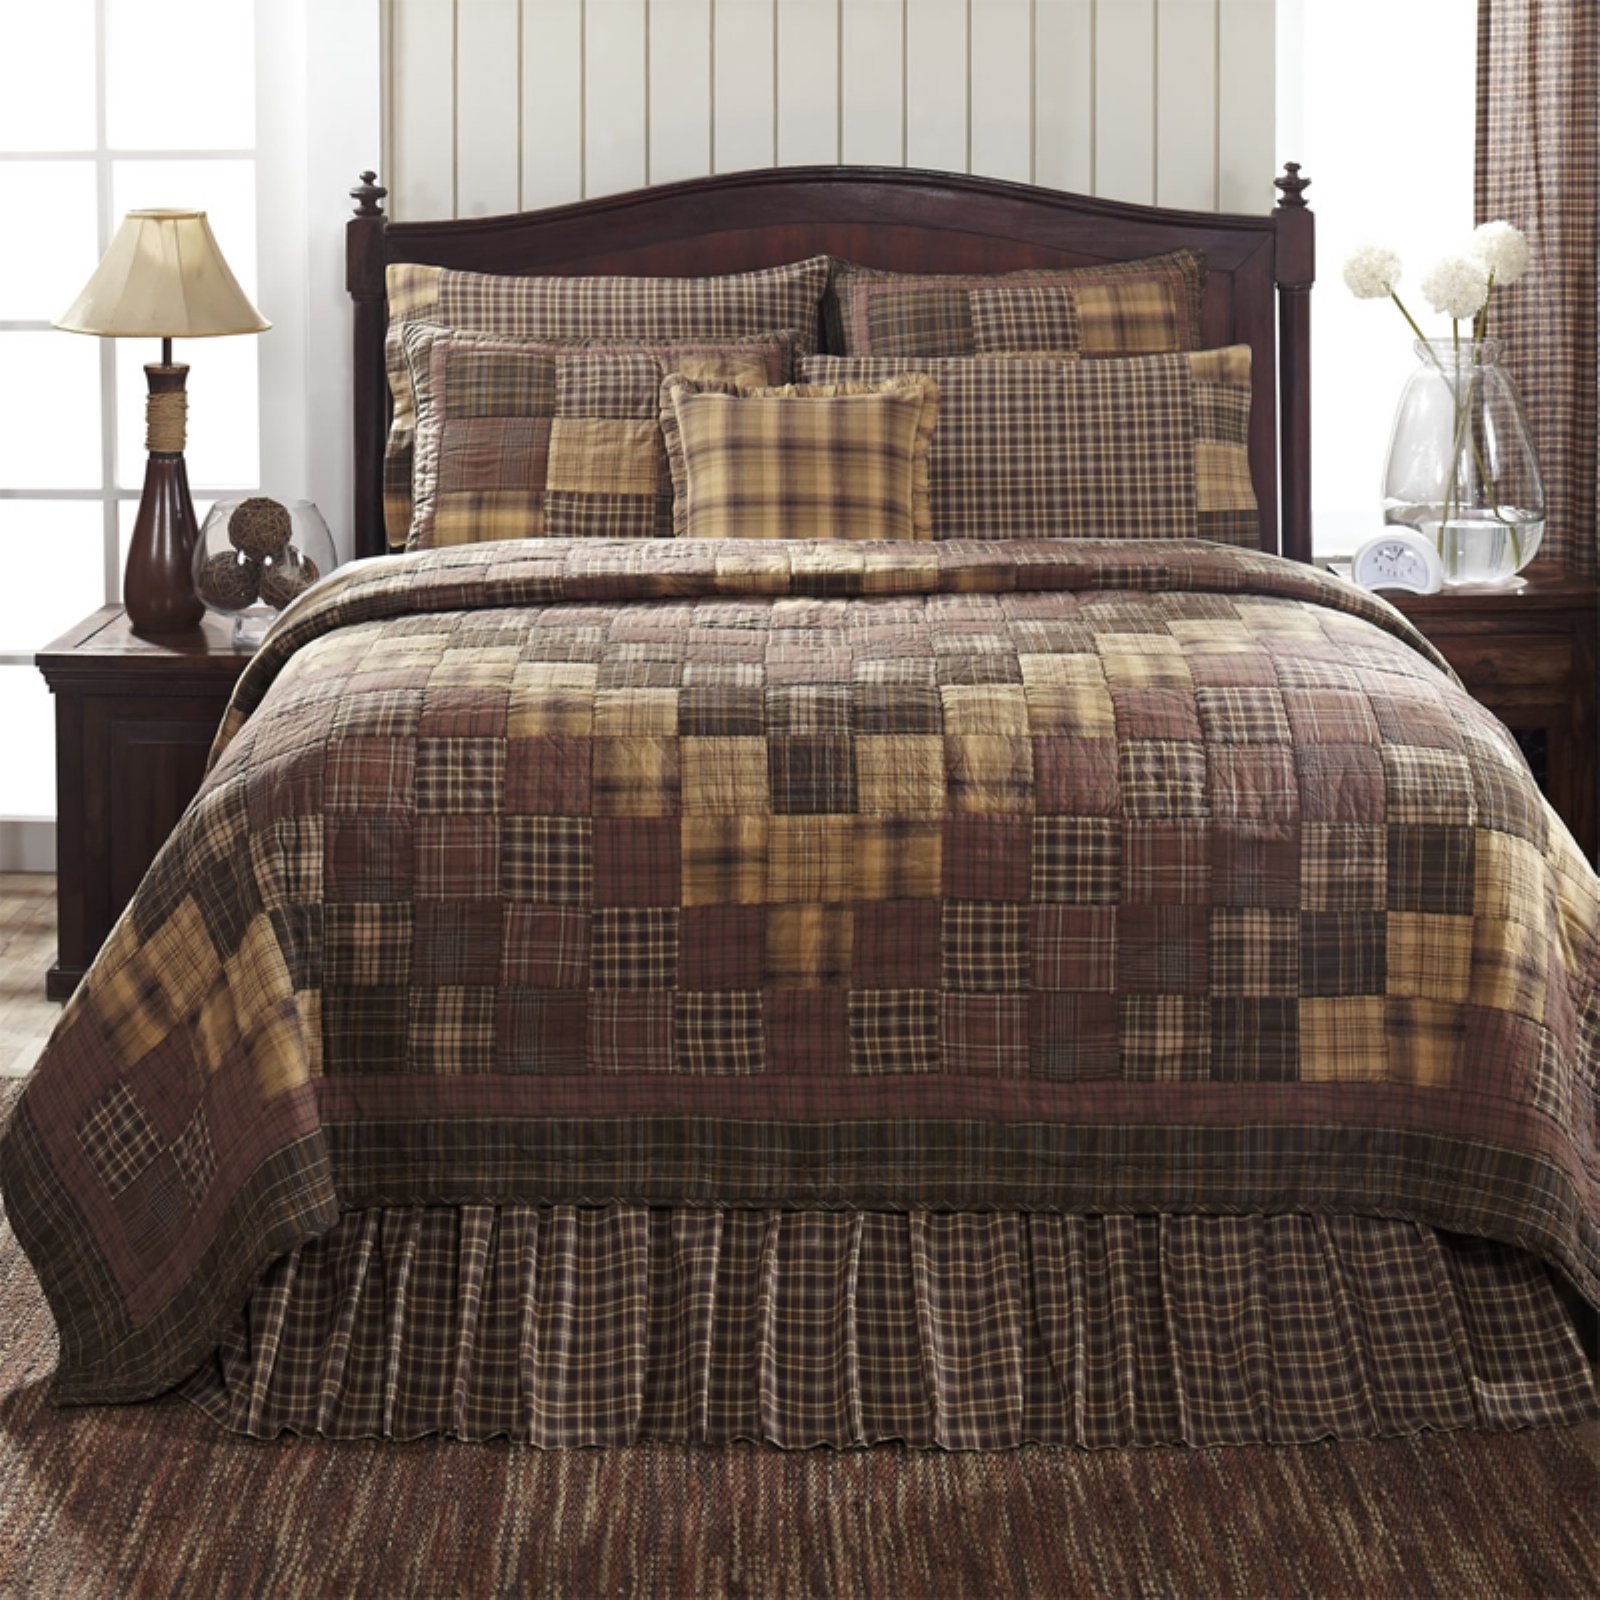 Prescott Quilt by VHC Brands